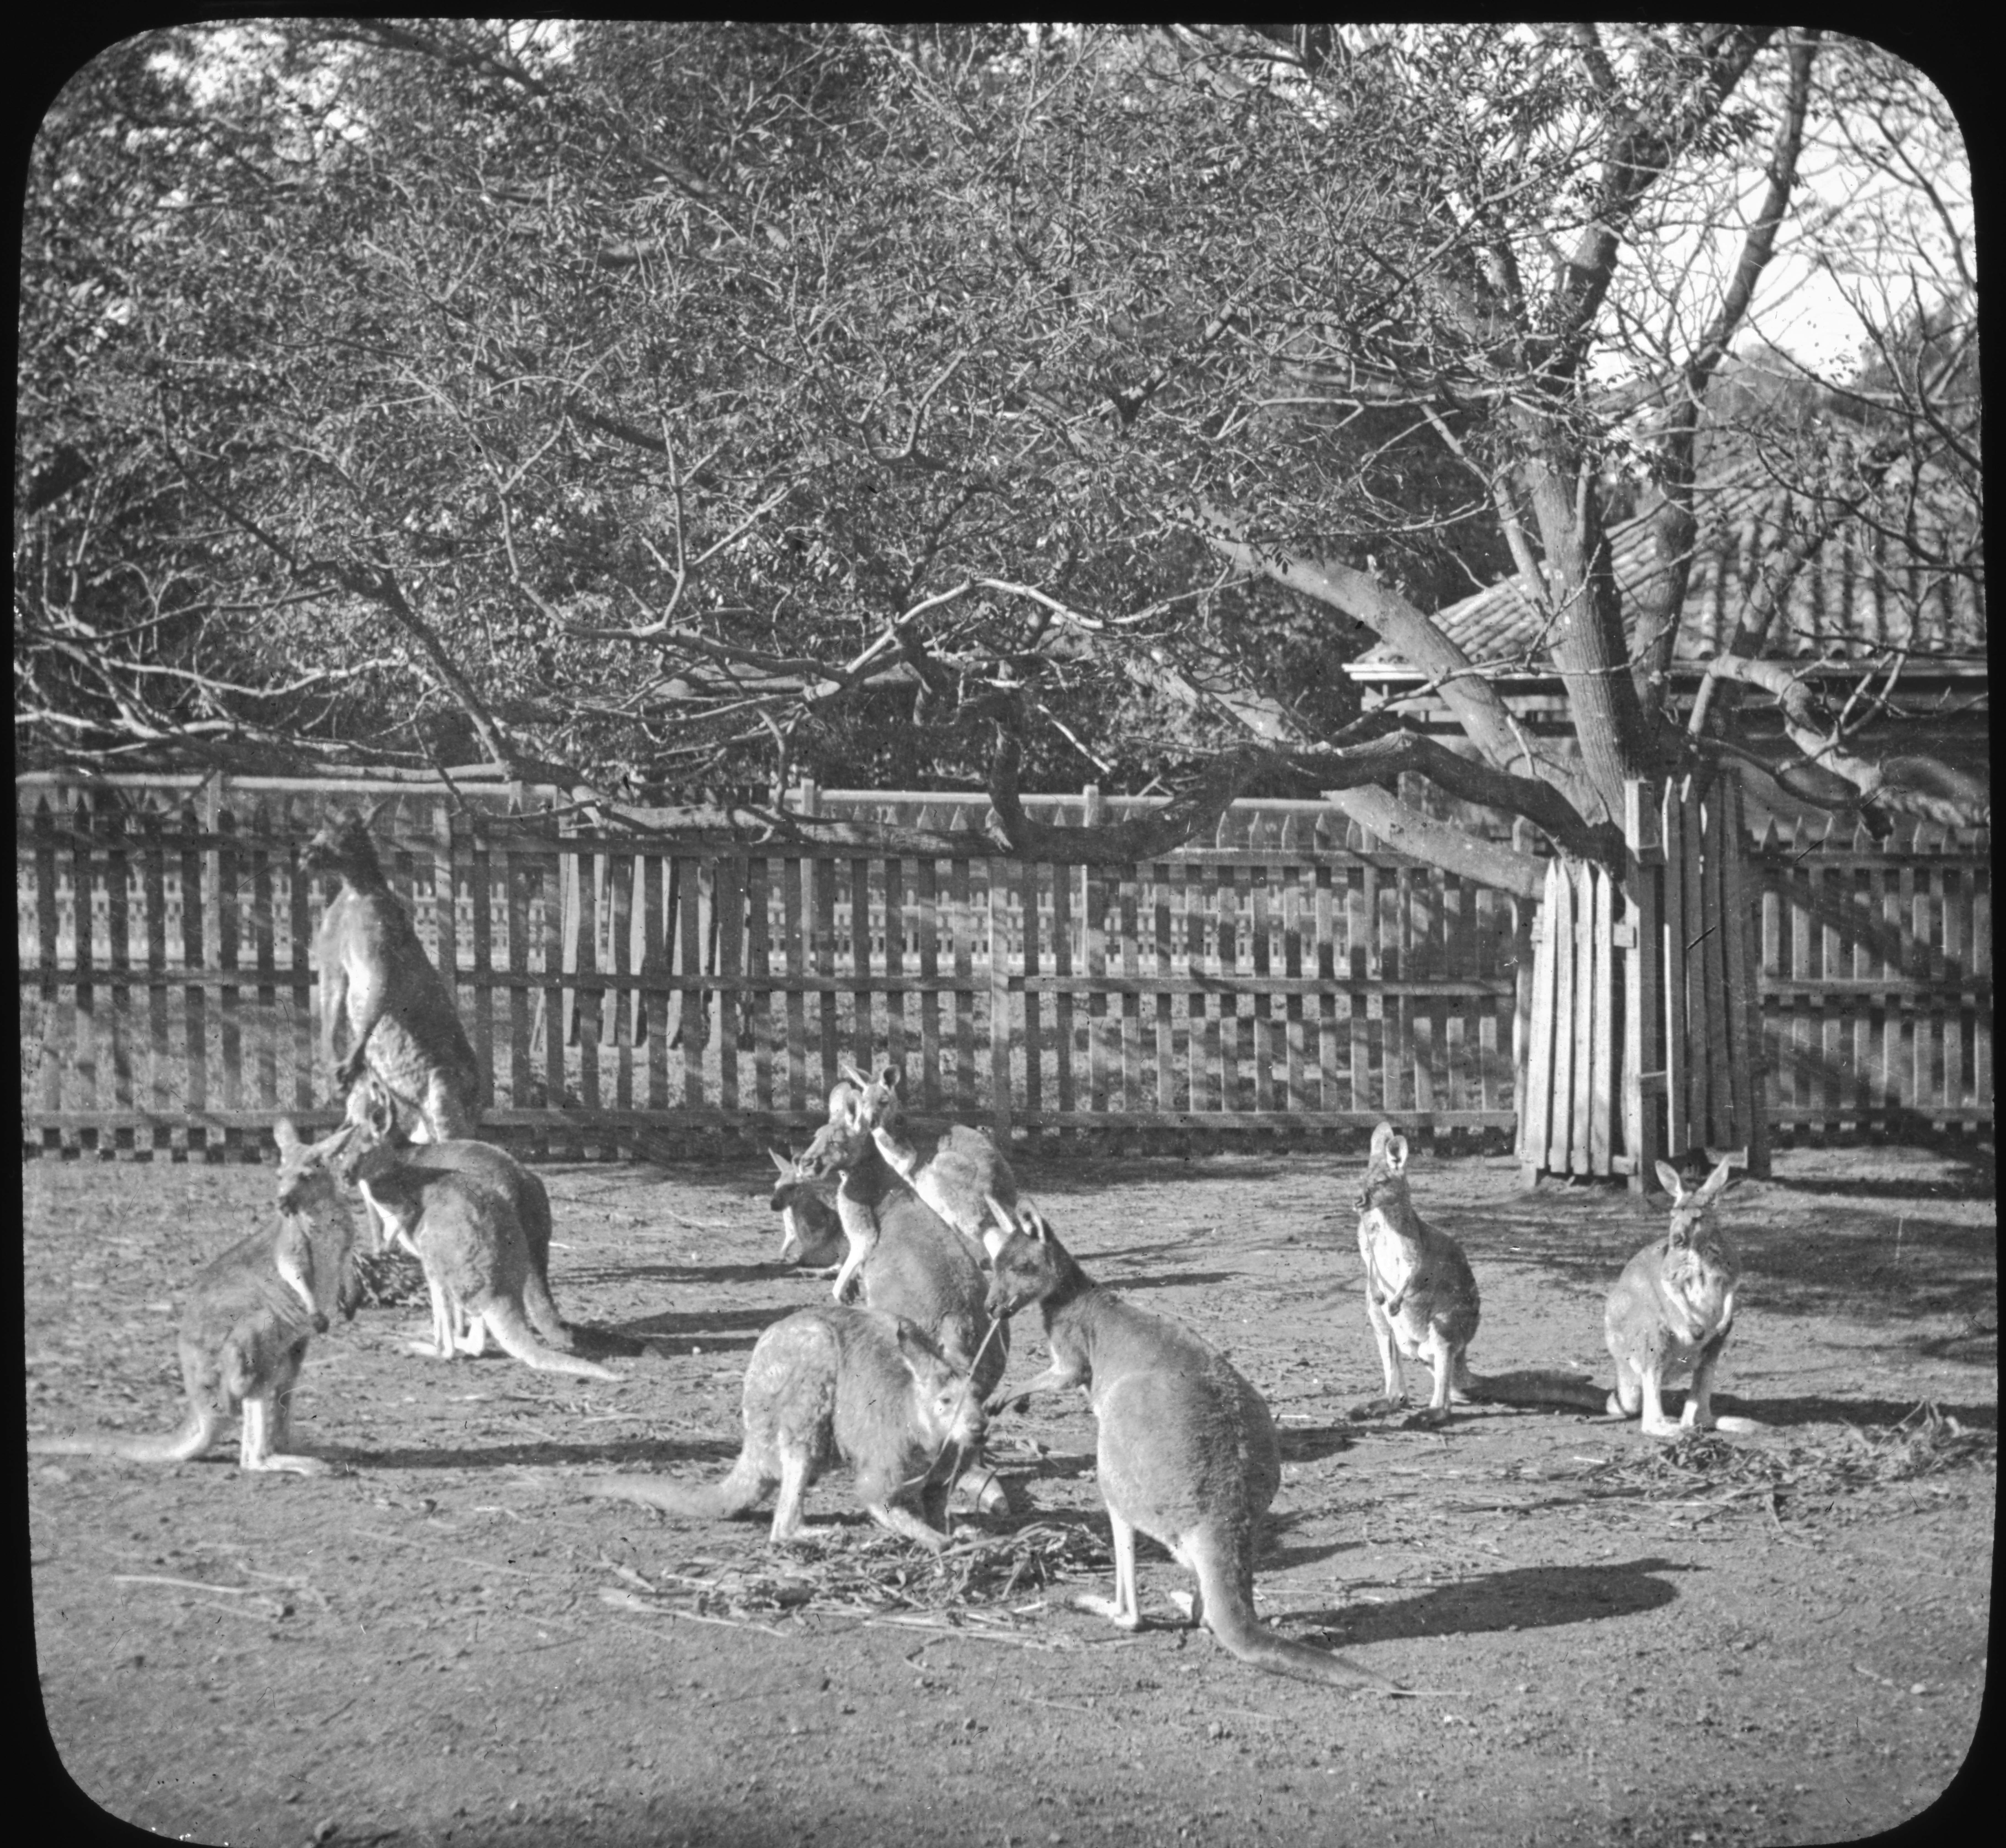 Kangaroos in The Zoological Garden, Adelaide, Australia.